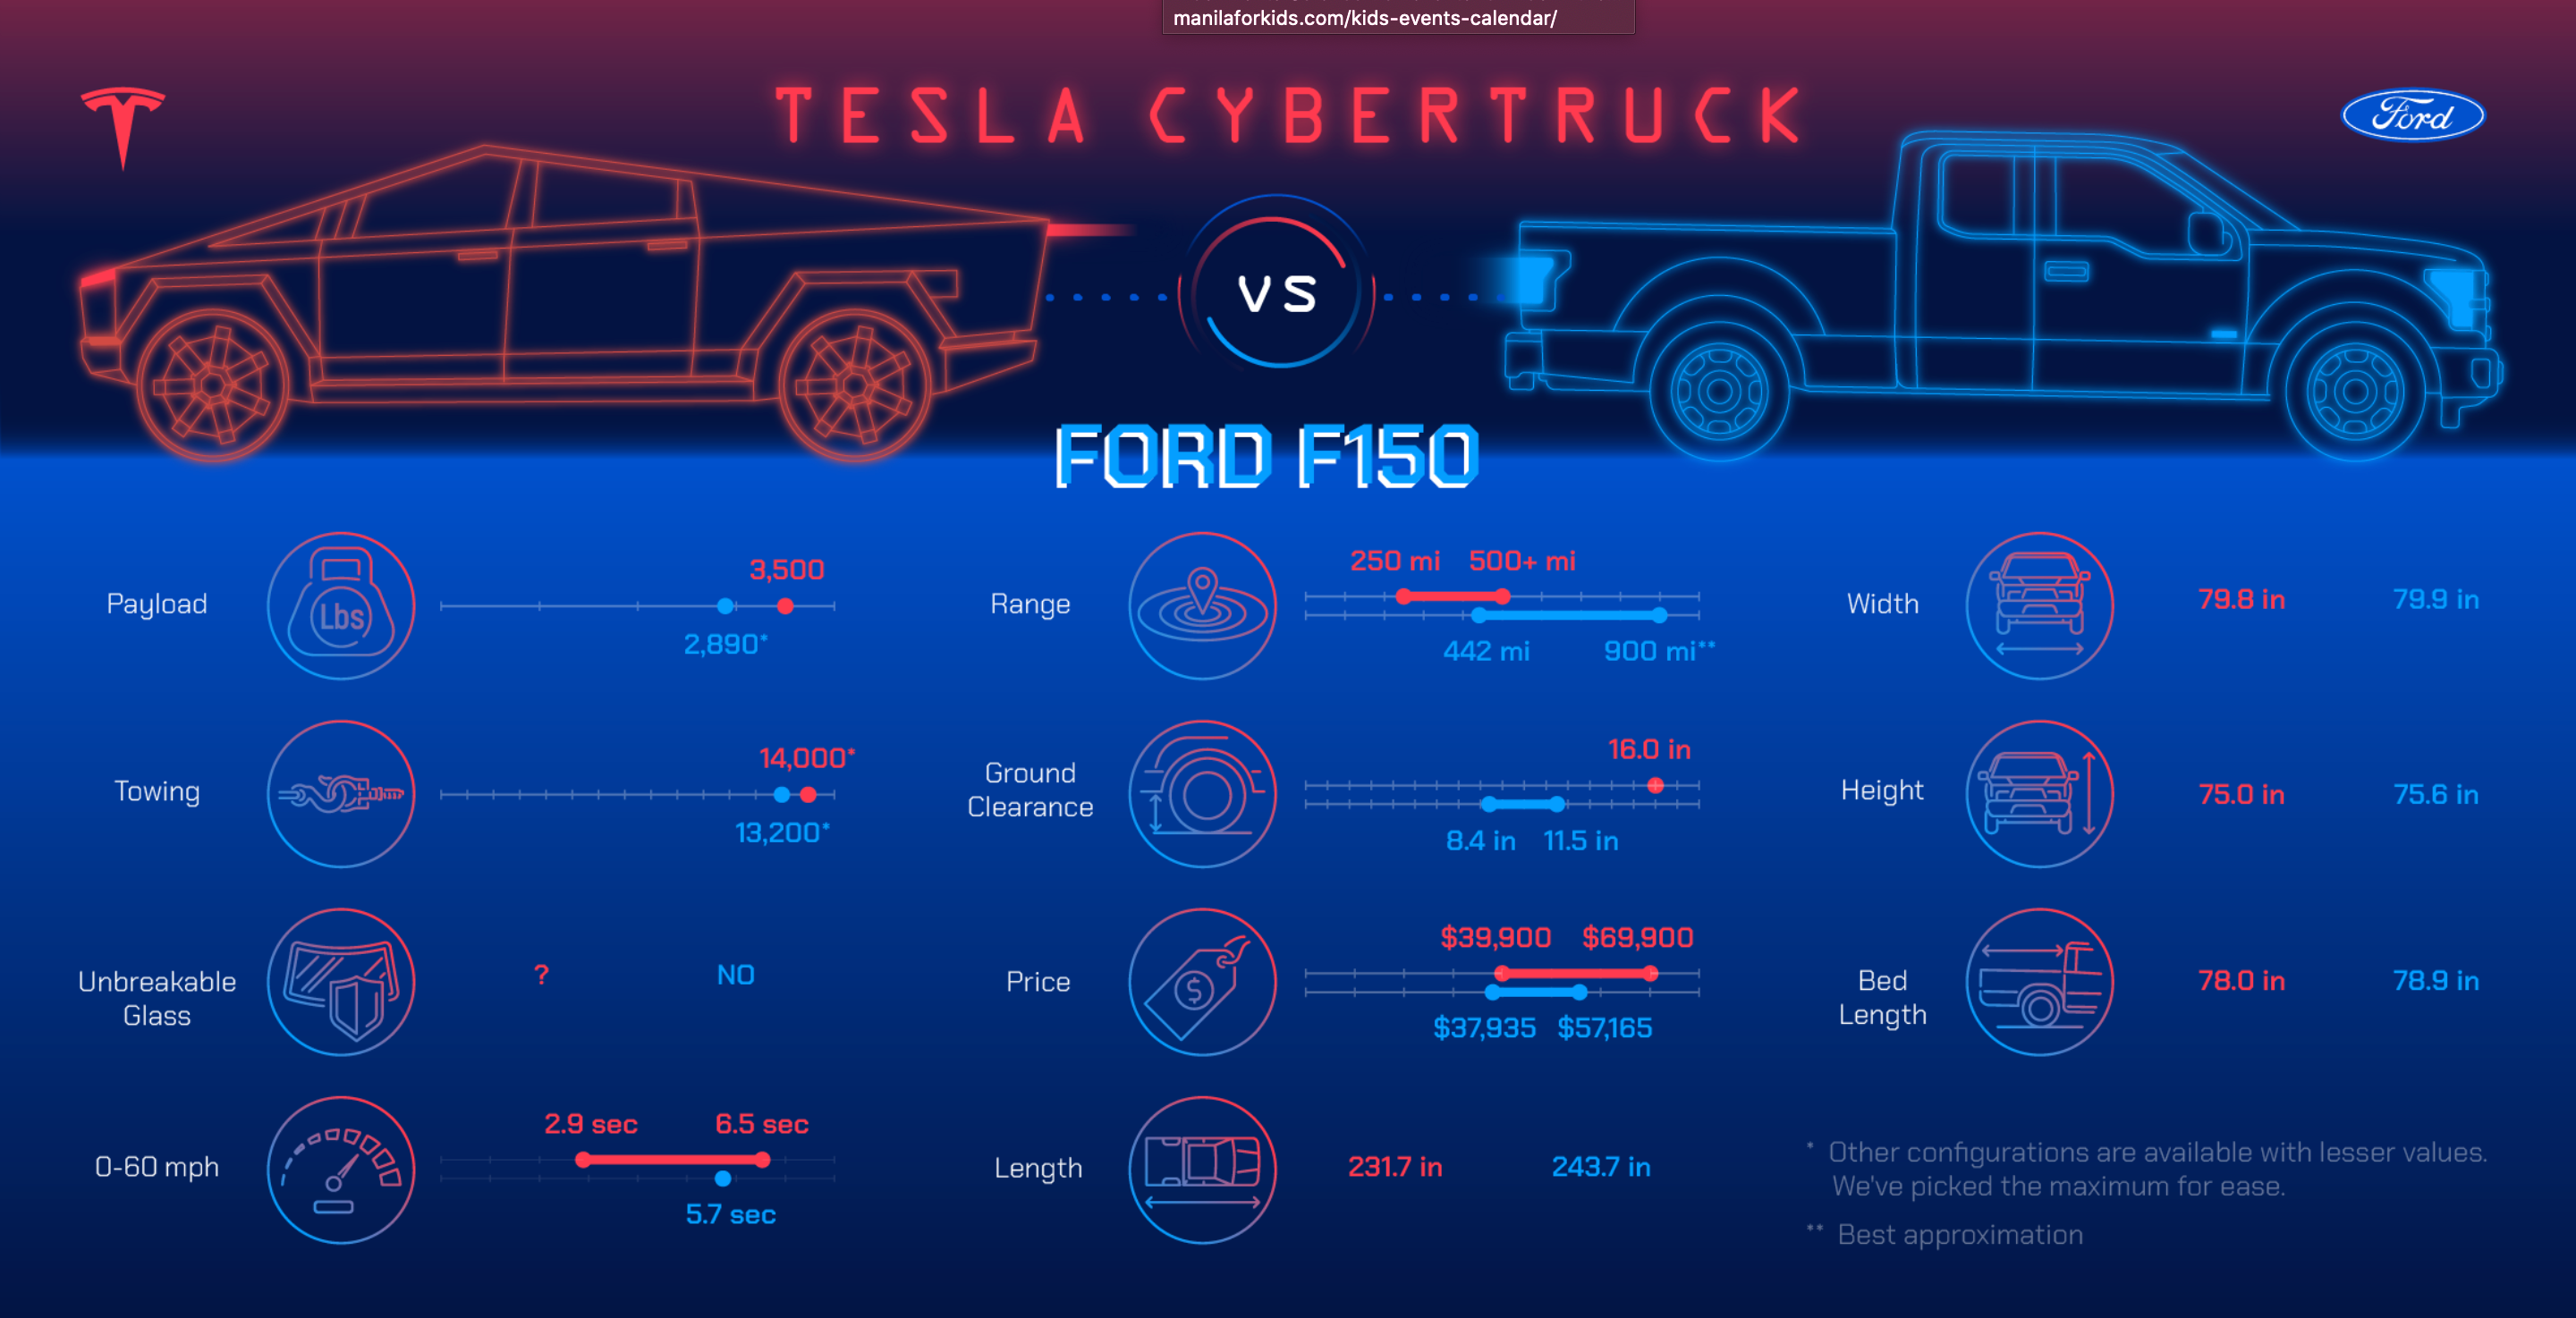 tesla-cybertruck-vehicle-to-grid-ford-f-150-